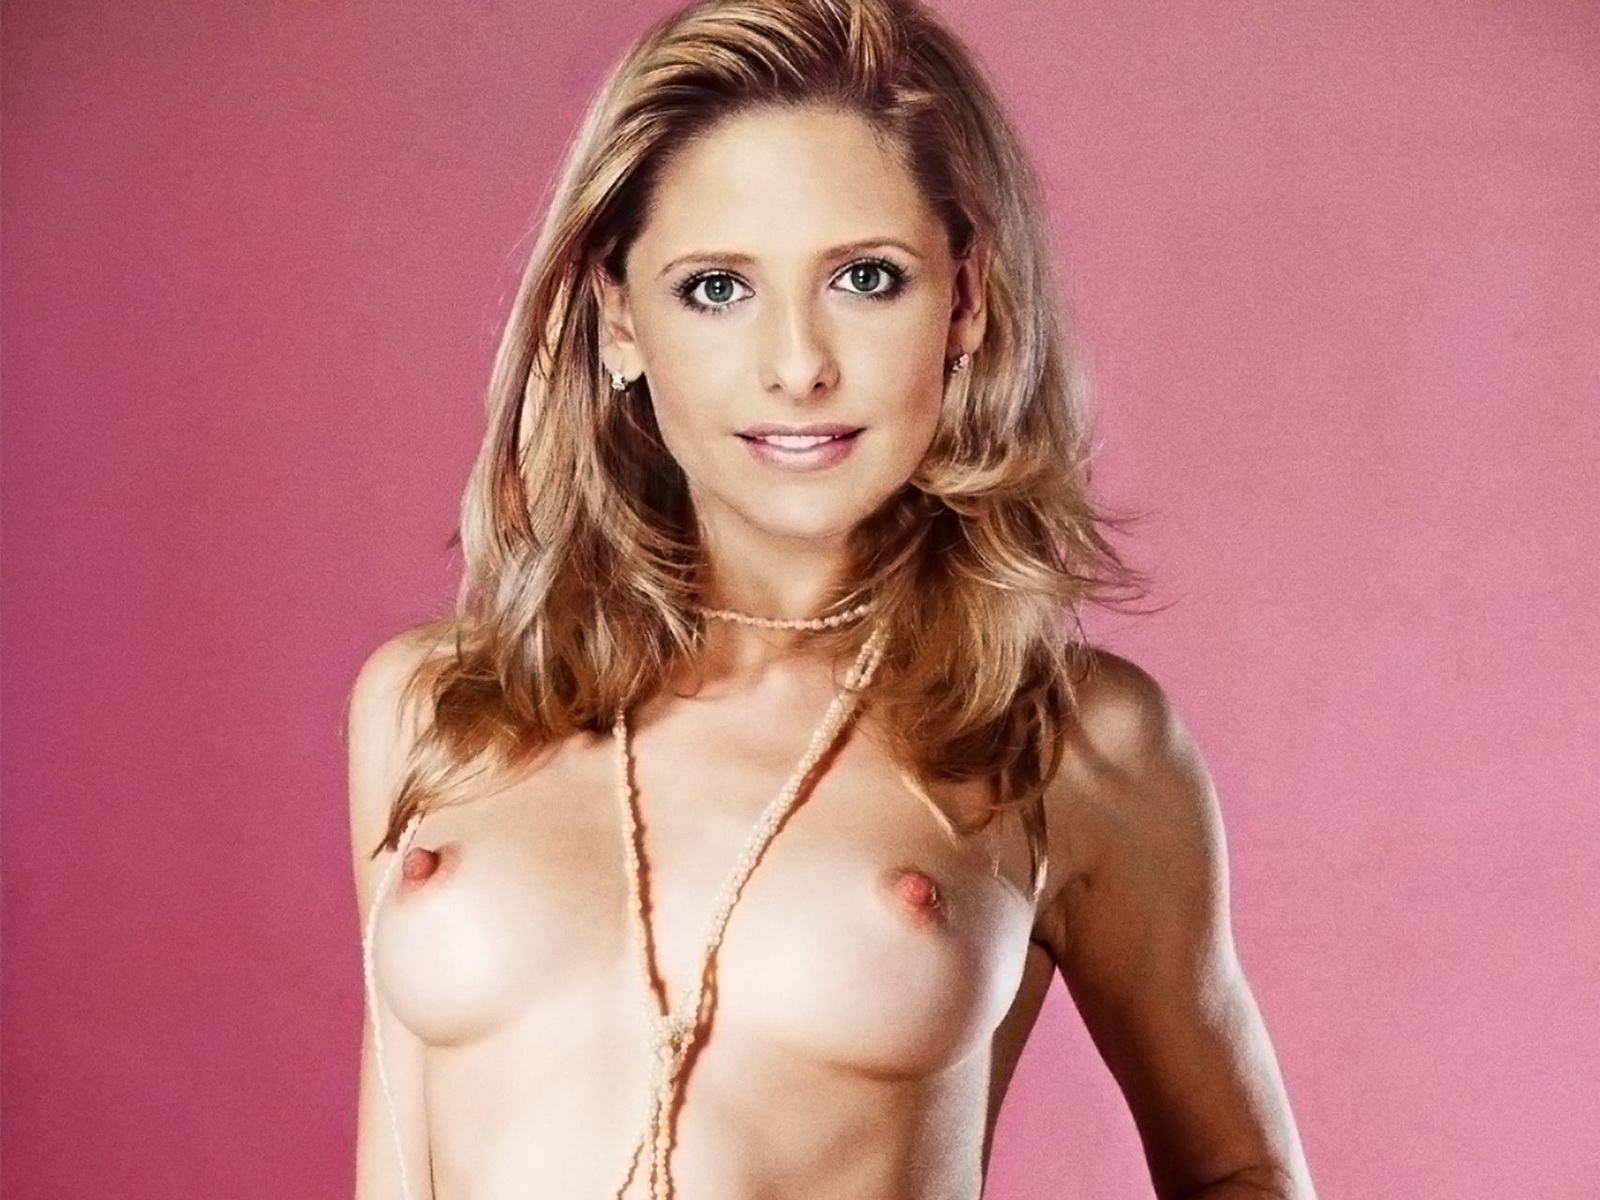 Sarah Michelle Gellar full frontal naked